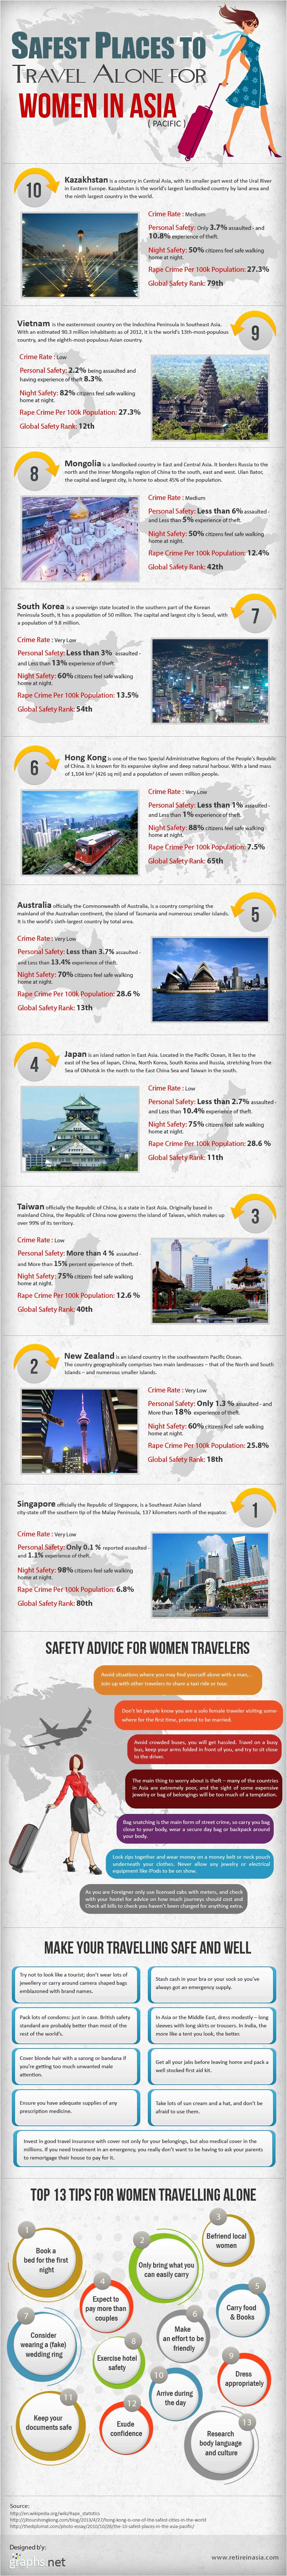 Asia Travel Safety for Women-Infographic